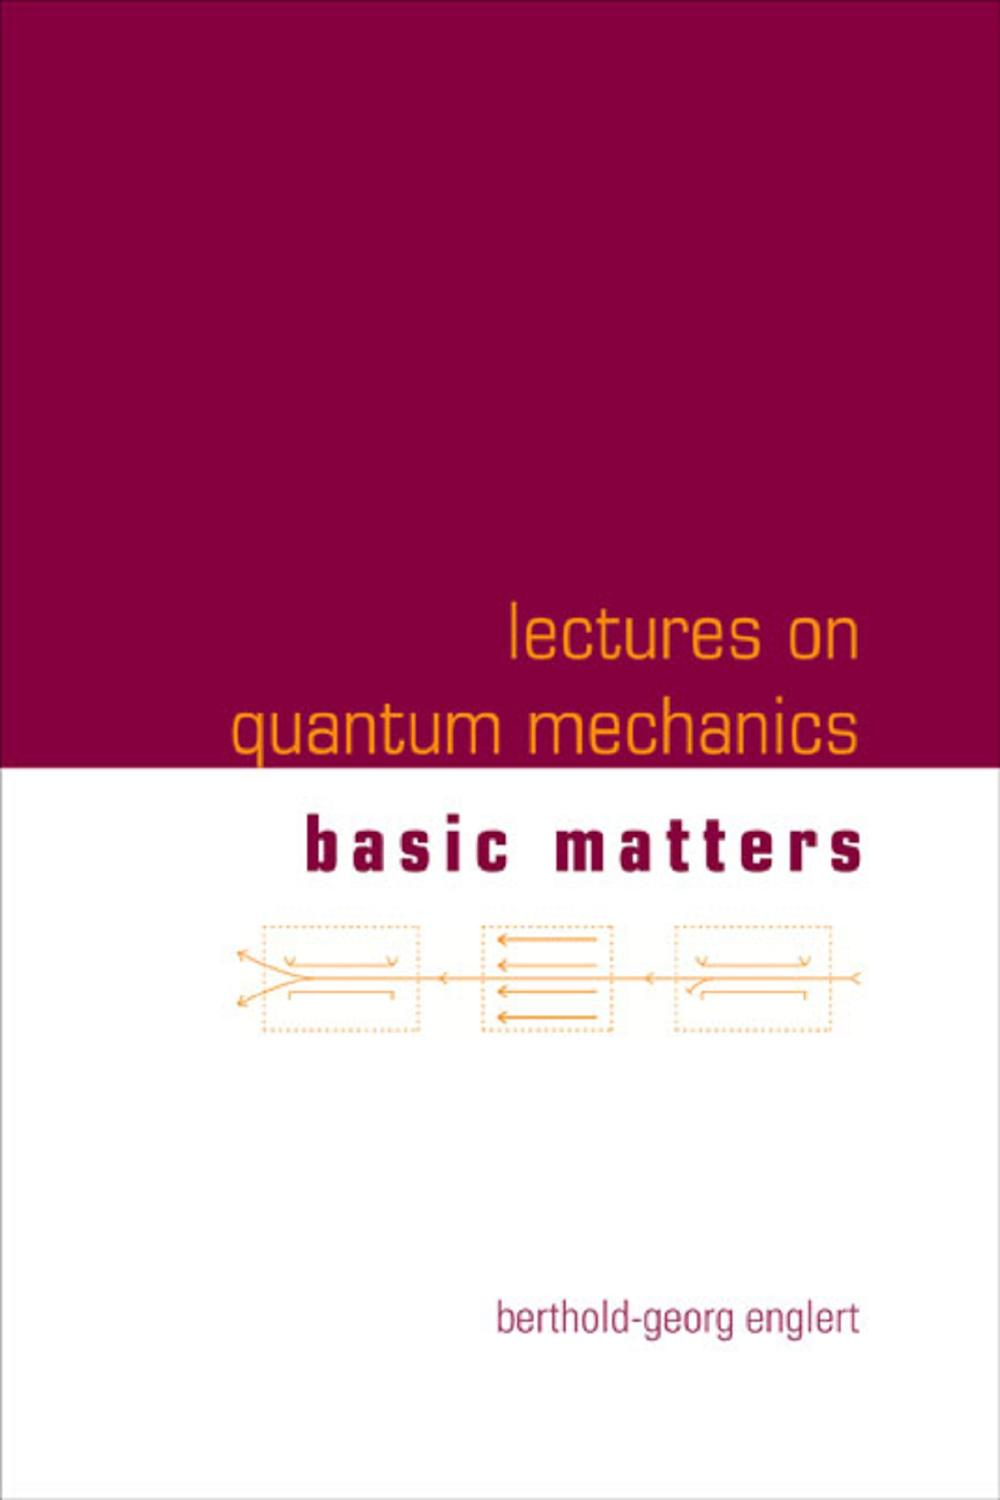 Lectures on Quantum Mechanics by Berthold-Georg Englert | Read